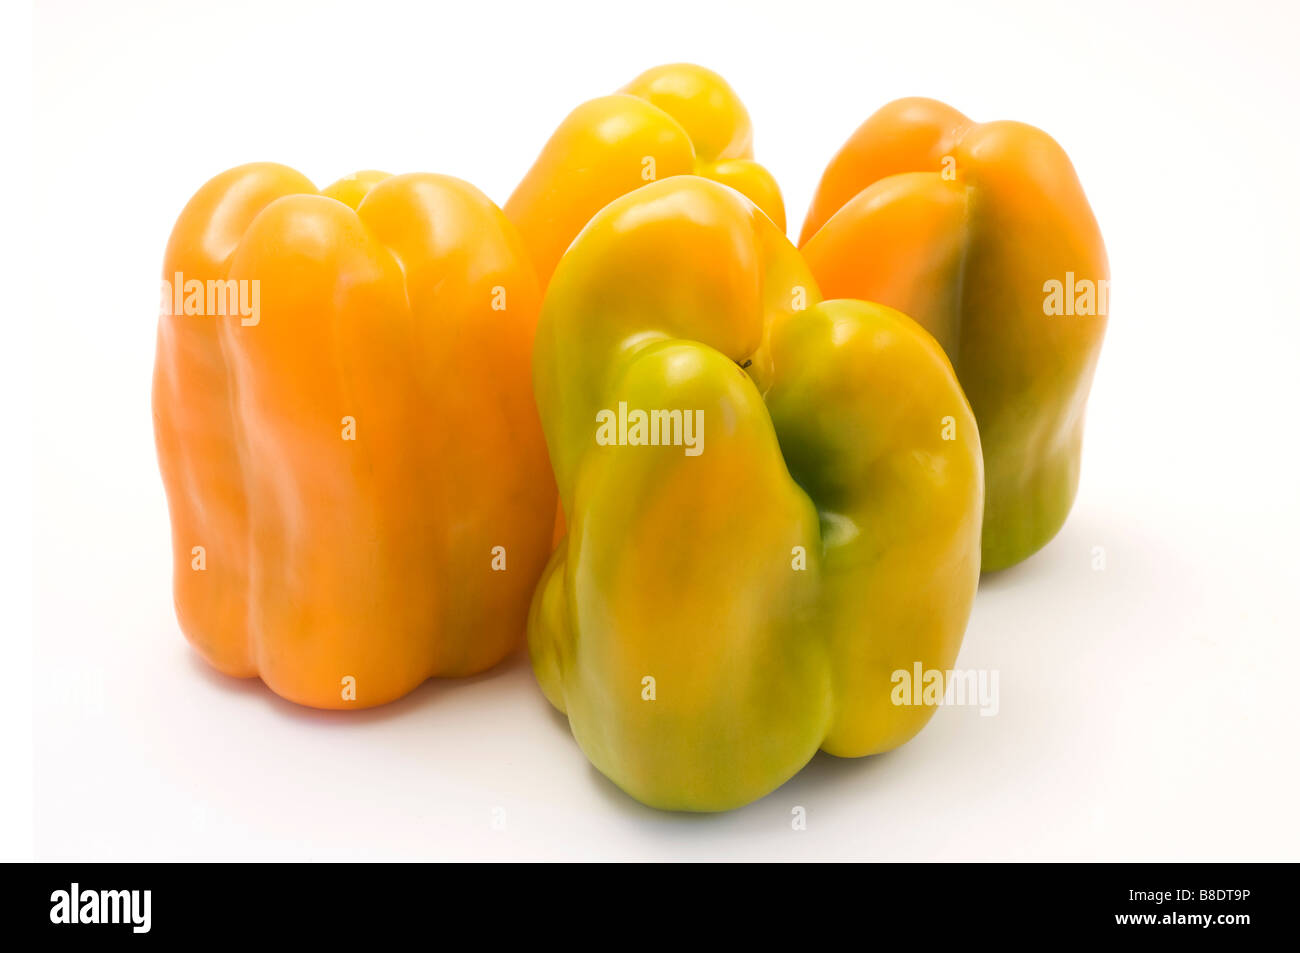 Yellow bell peppers Capsicum annuum on a white background - Stock Image